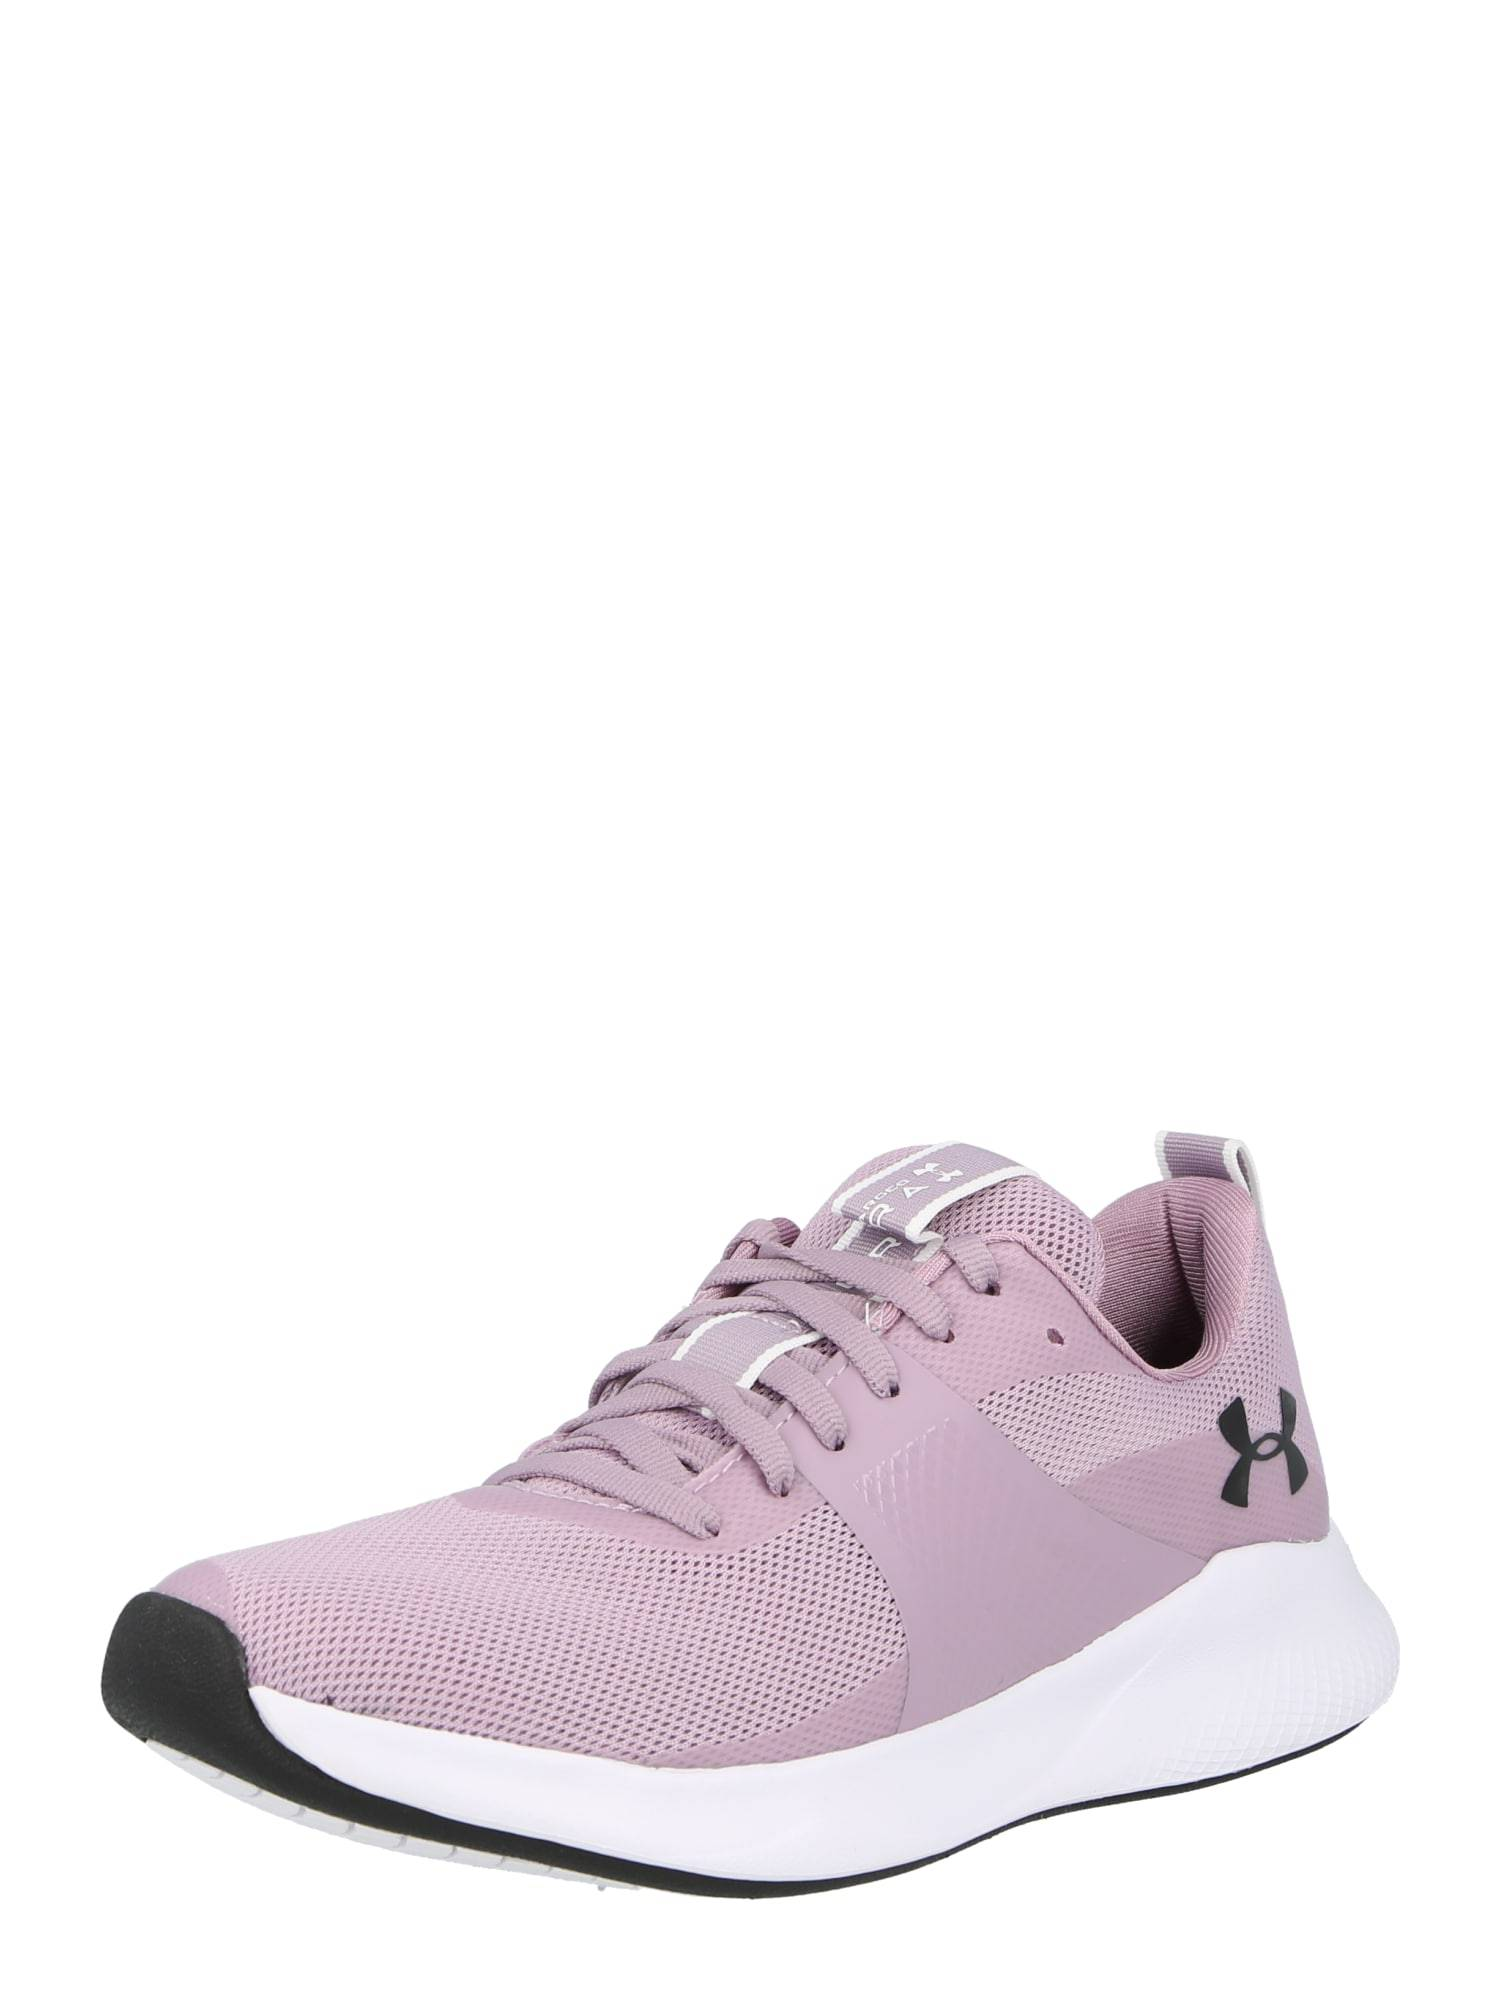 UNDER ARMOUR Chaussure de sport 'Charged Aurora'  - Rose - Taille: 7 - female